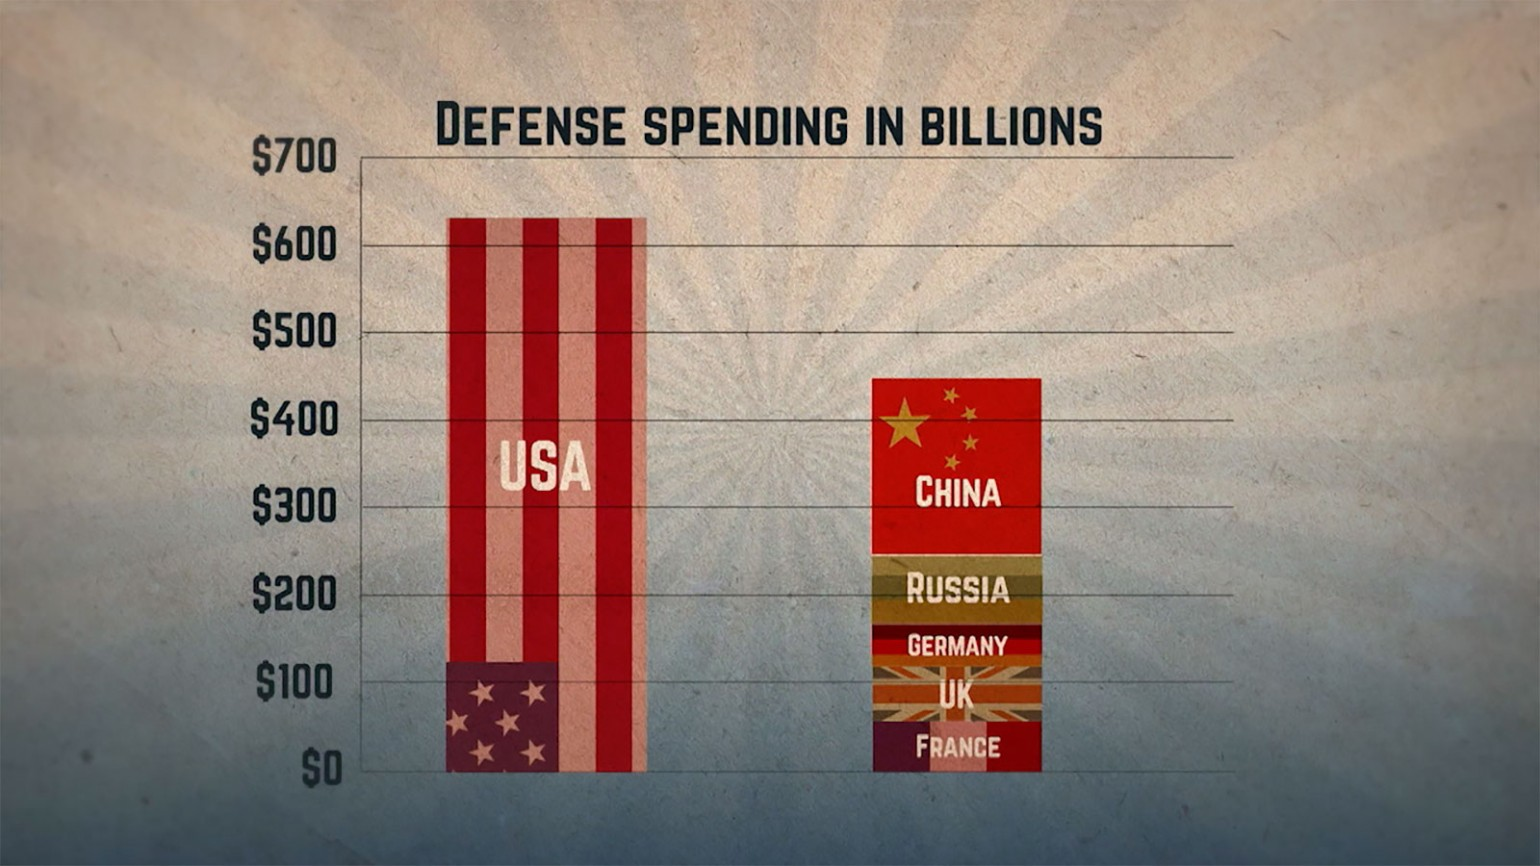 Table showing defense spending in billions of the USA compared to other countries. Photo courtesy of James Shelley.